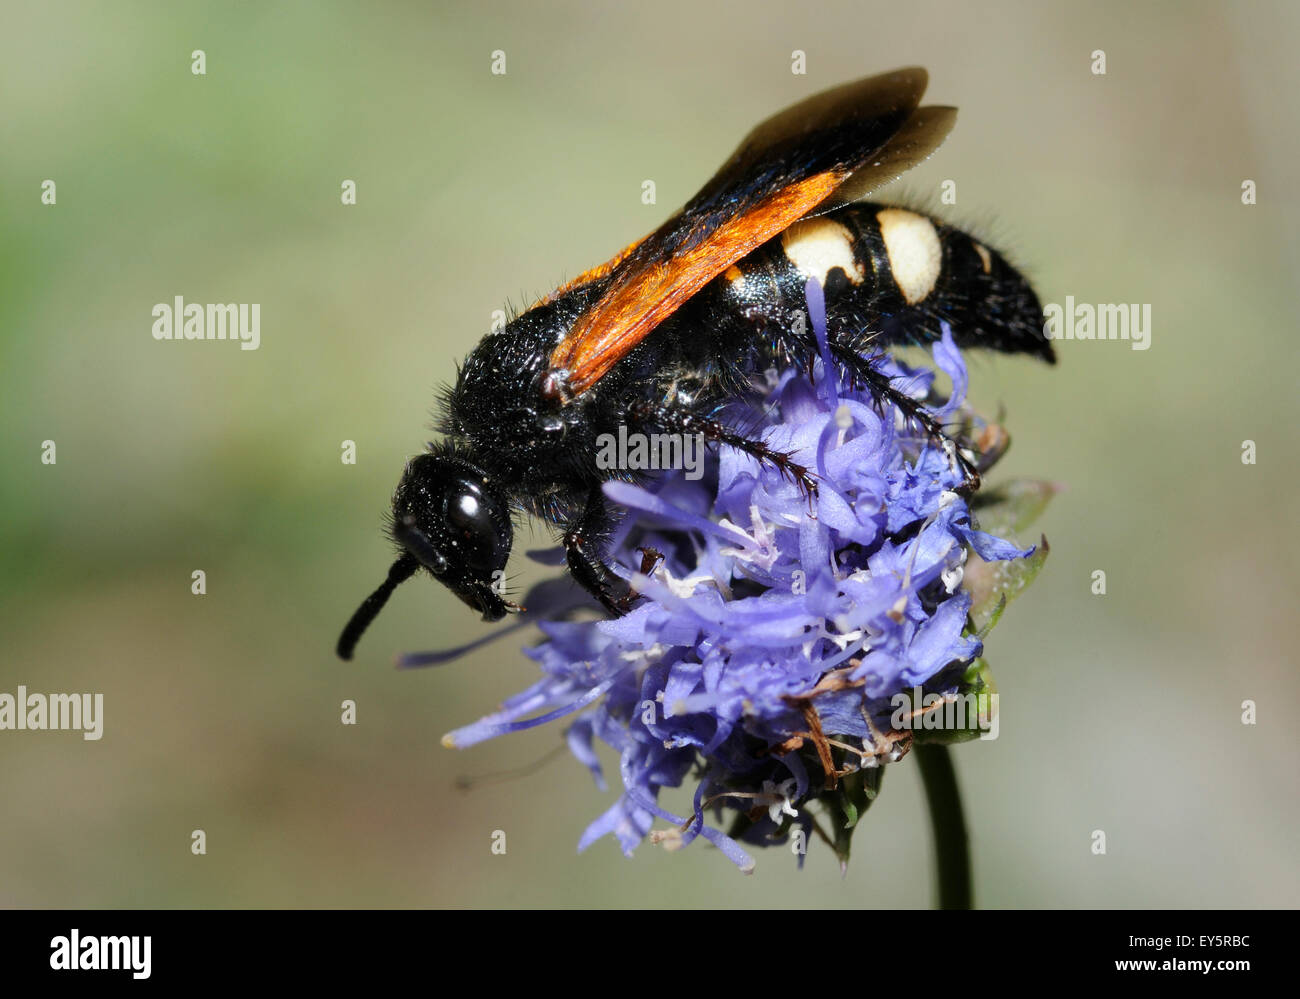 Scolid Wasp on Sheep's-bit flower - Aqutaine France - Stock Image